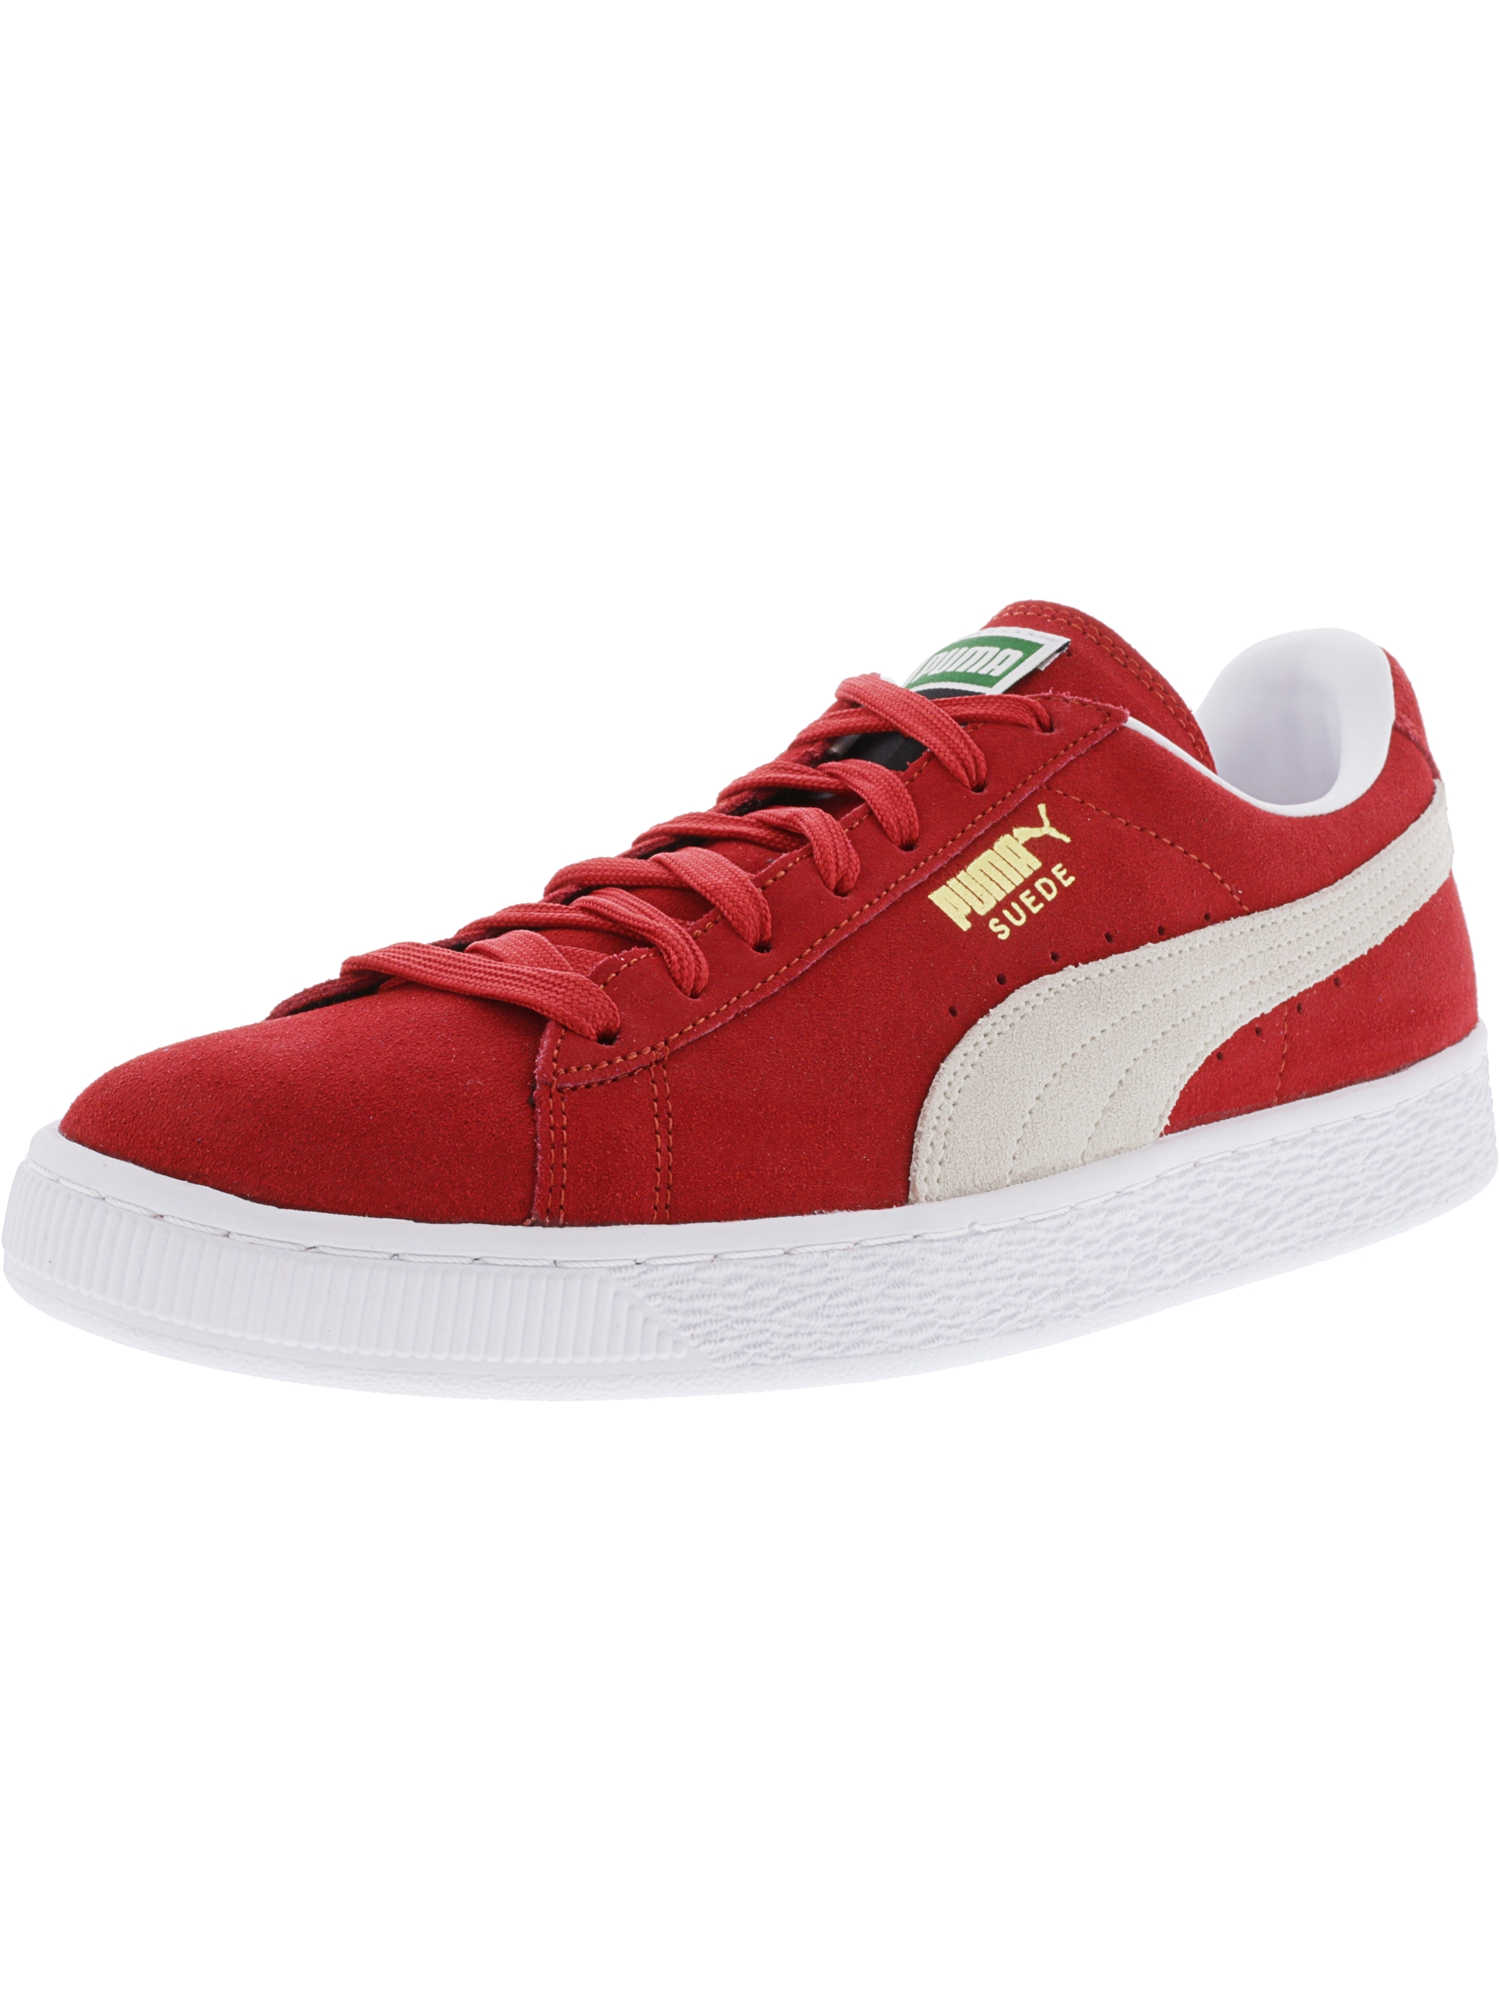 Puma Men's Suede Classic + High Risk Red / White Ankle-High Fashion Sneaker - 8.5M